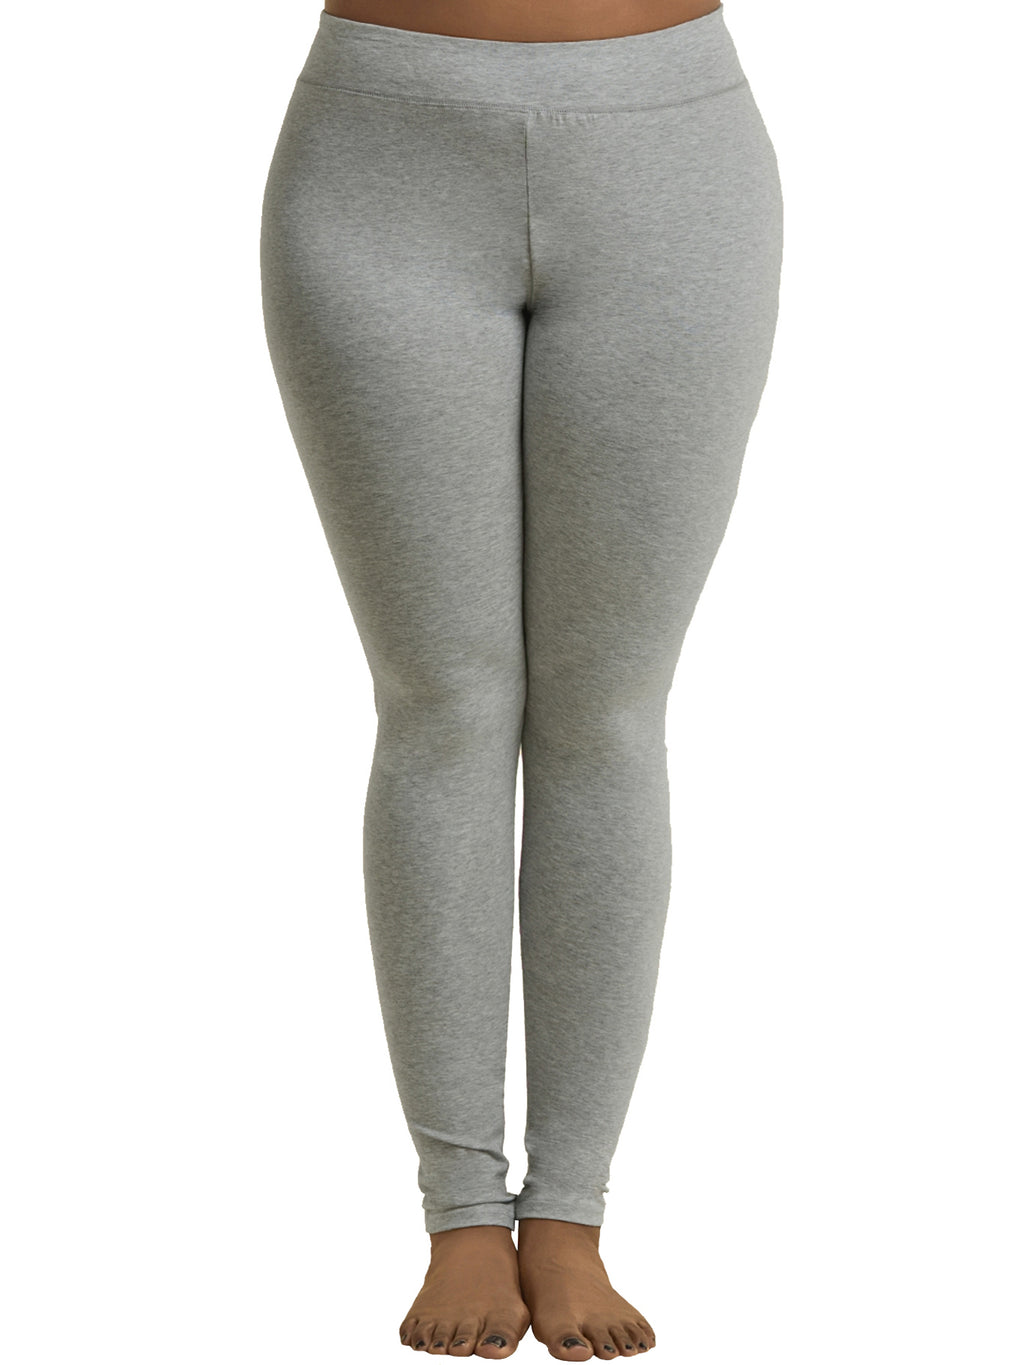 Heather Gray Womens Plus Size Full Length Leggings